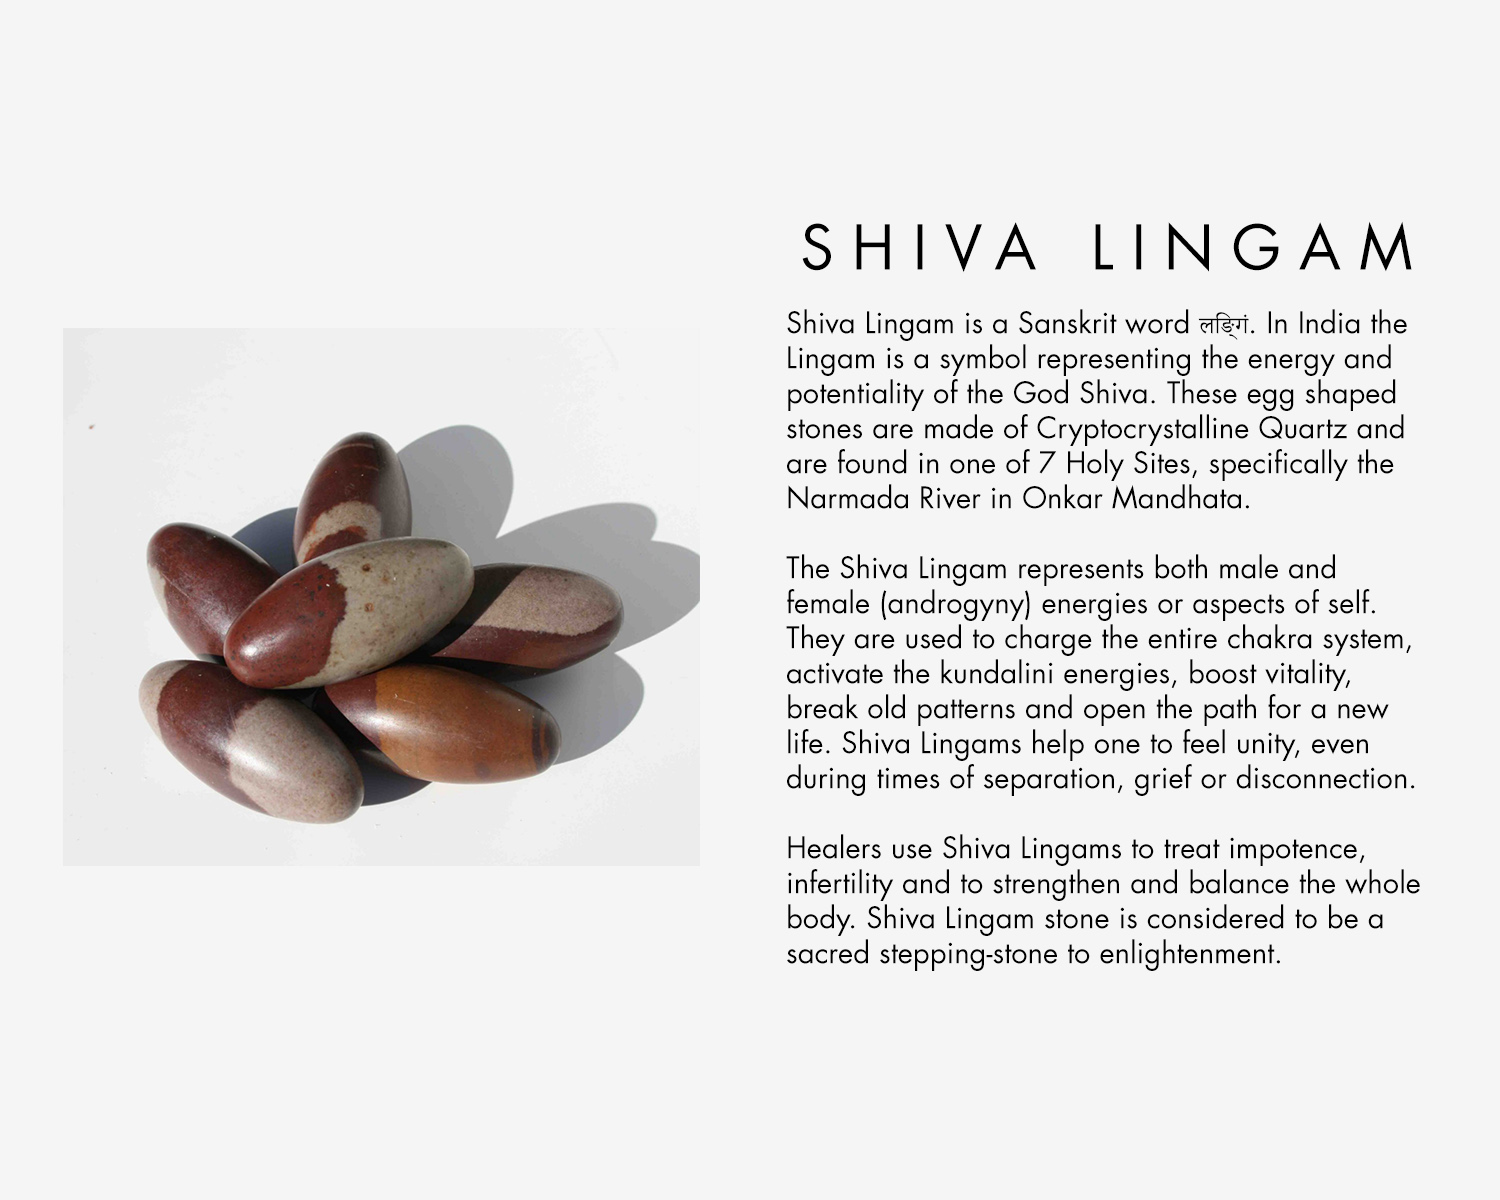 Shiva Lingham is a Sanskrit word. In india the Lingham is a symbol representing the energy and potentiality of the God Shiva. These egg shapes stones are made of Cryptocrystalline Quartz and are found in one of 7 Holy Sites, specifically the Narmada River in Onkar Mandhata,  The Shiva Lingham represents both male and female (androgyny) energies or aspects of self. They are used to charge the entire chakra system, activate the kundalini energies, boost vitality, break old patterns and open the path for a new life. Shiva Linghams help one to feel unity, even during times of separation, grief or disconnection.  Healers use Shiva Linghams to treat impotence, infertility and to strengthen and balance the whole body. Shiva Linghams stones are considered to be a sacred stepping-stone to enlightenment.